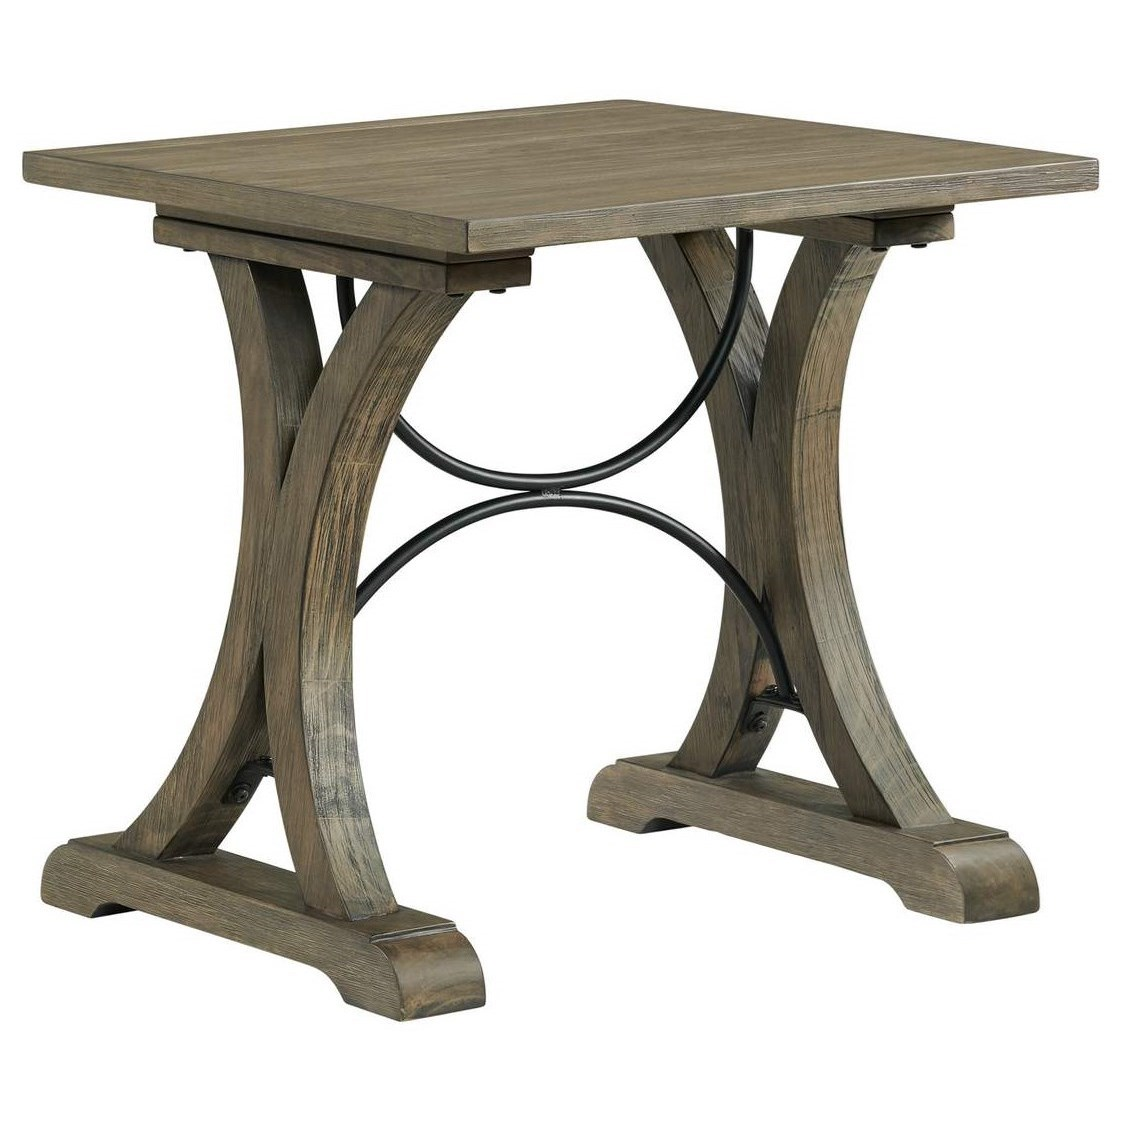 7047 End Table by Lane at Esprit Decor Home Furnishings